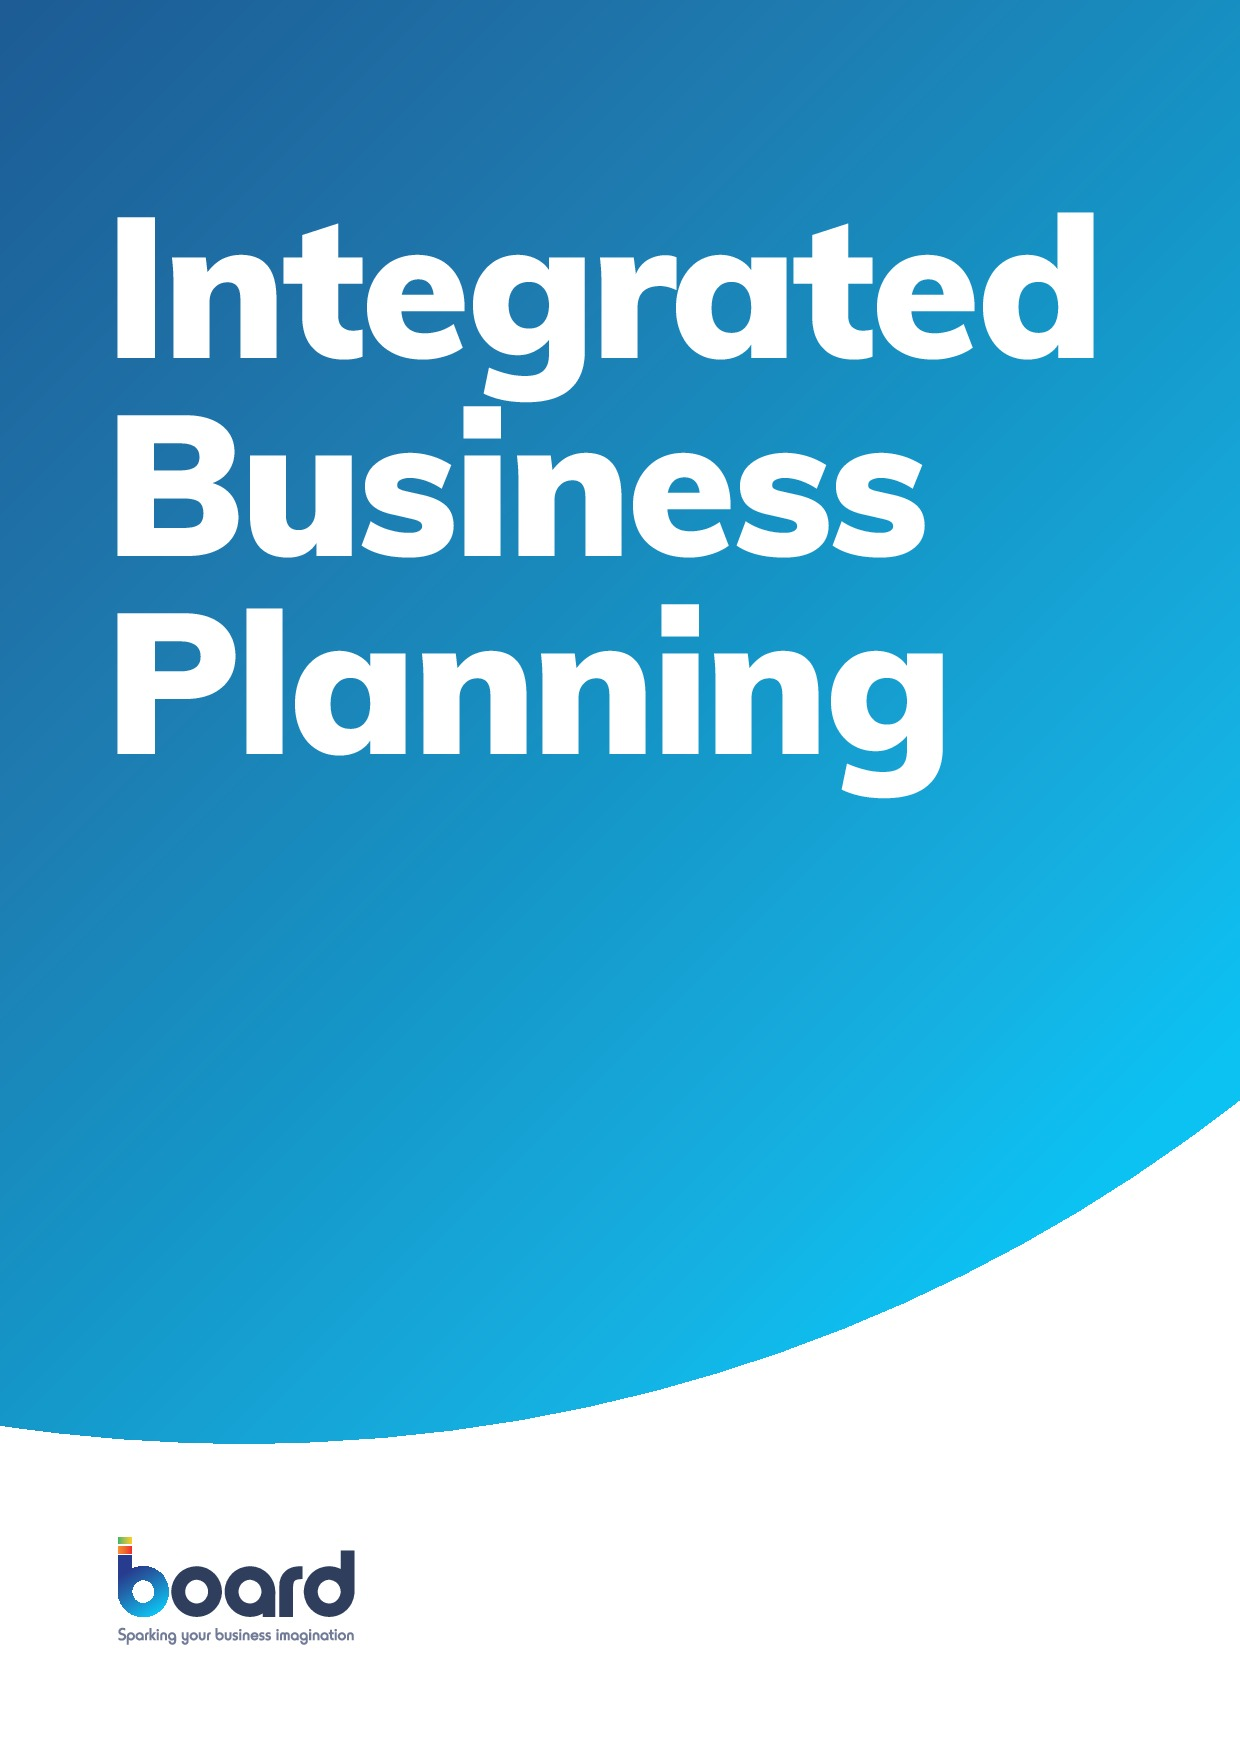 Taking an Integrated Approach to Business Planning